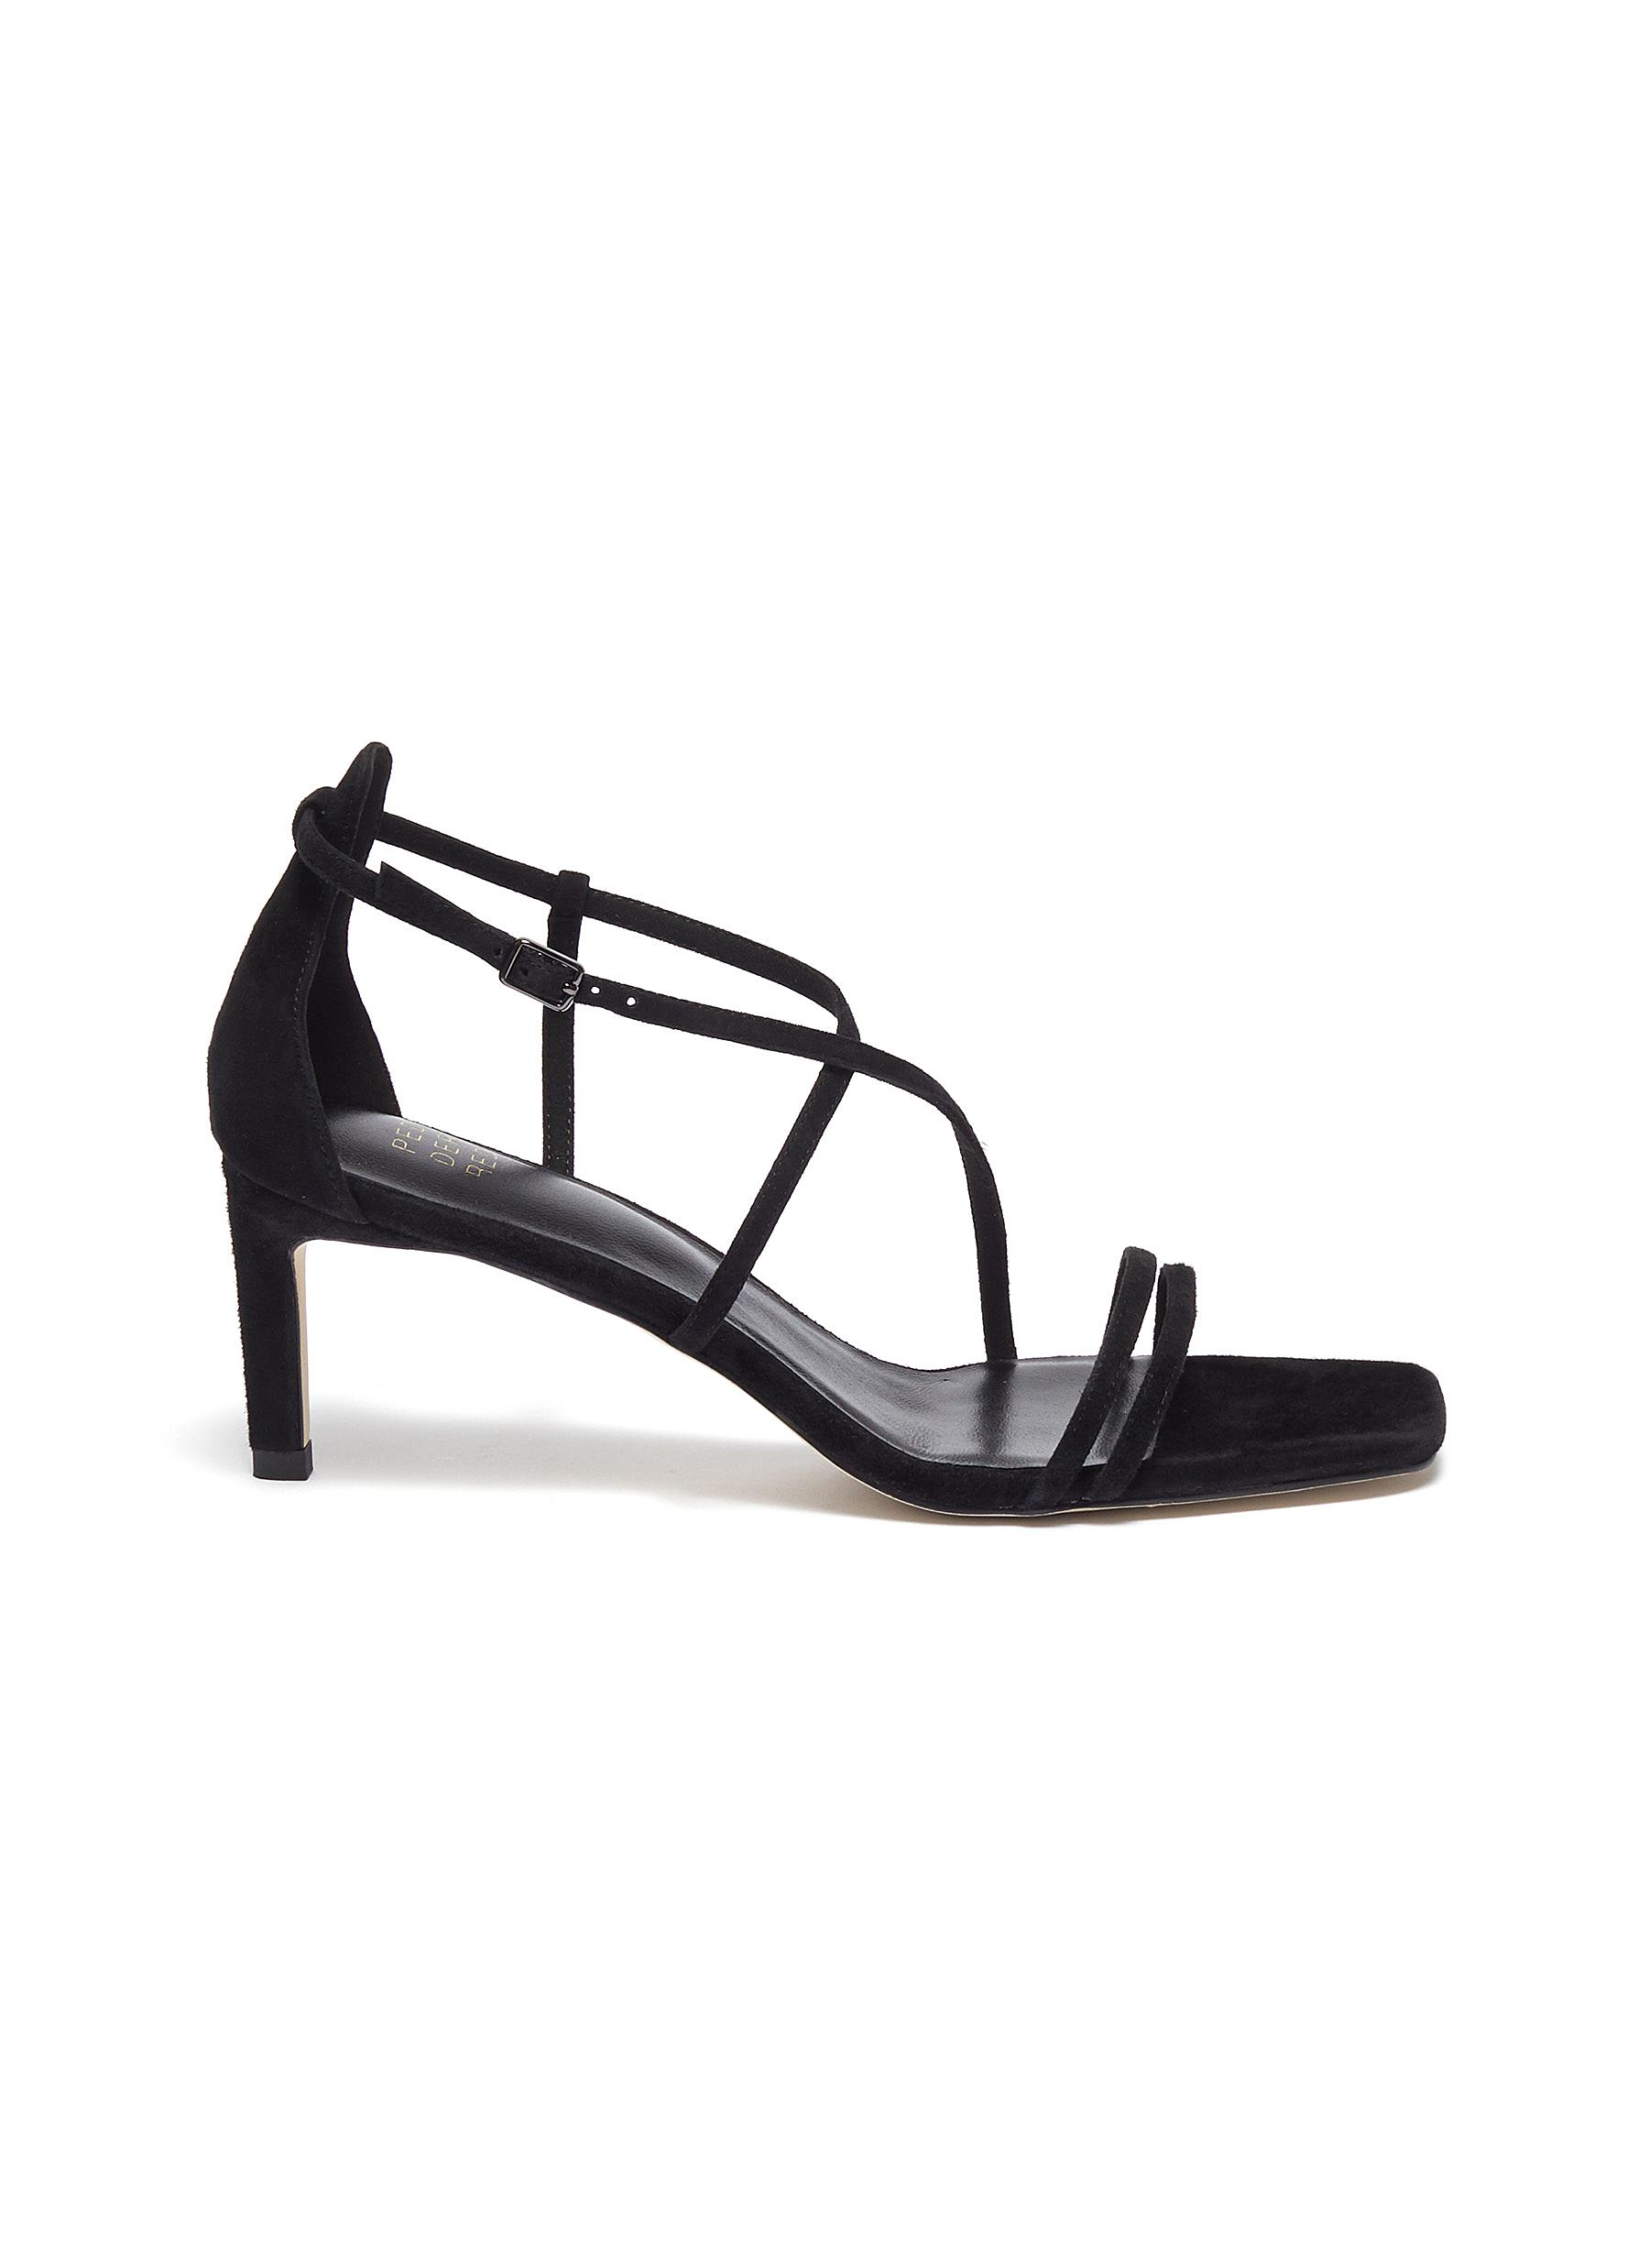 Strappy suede sandals by Pedder Red